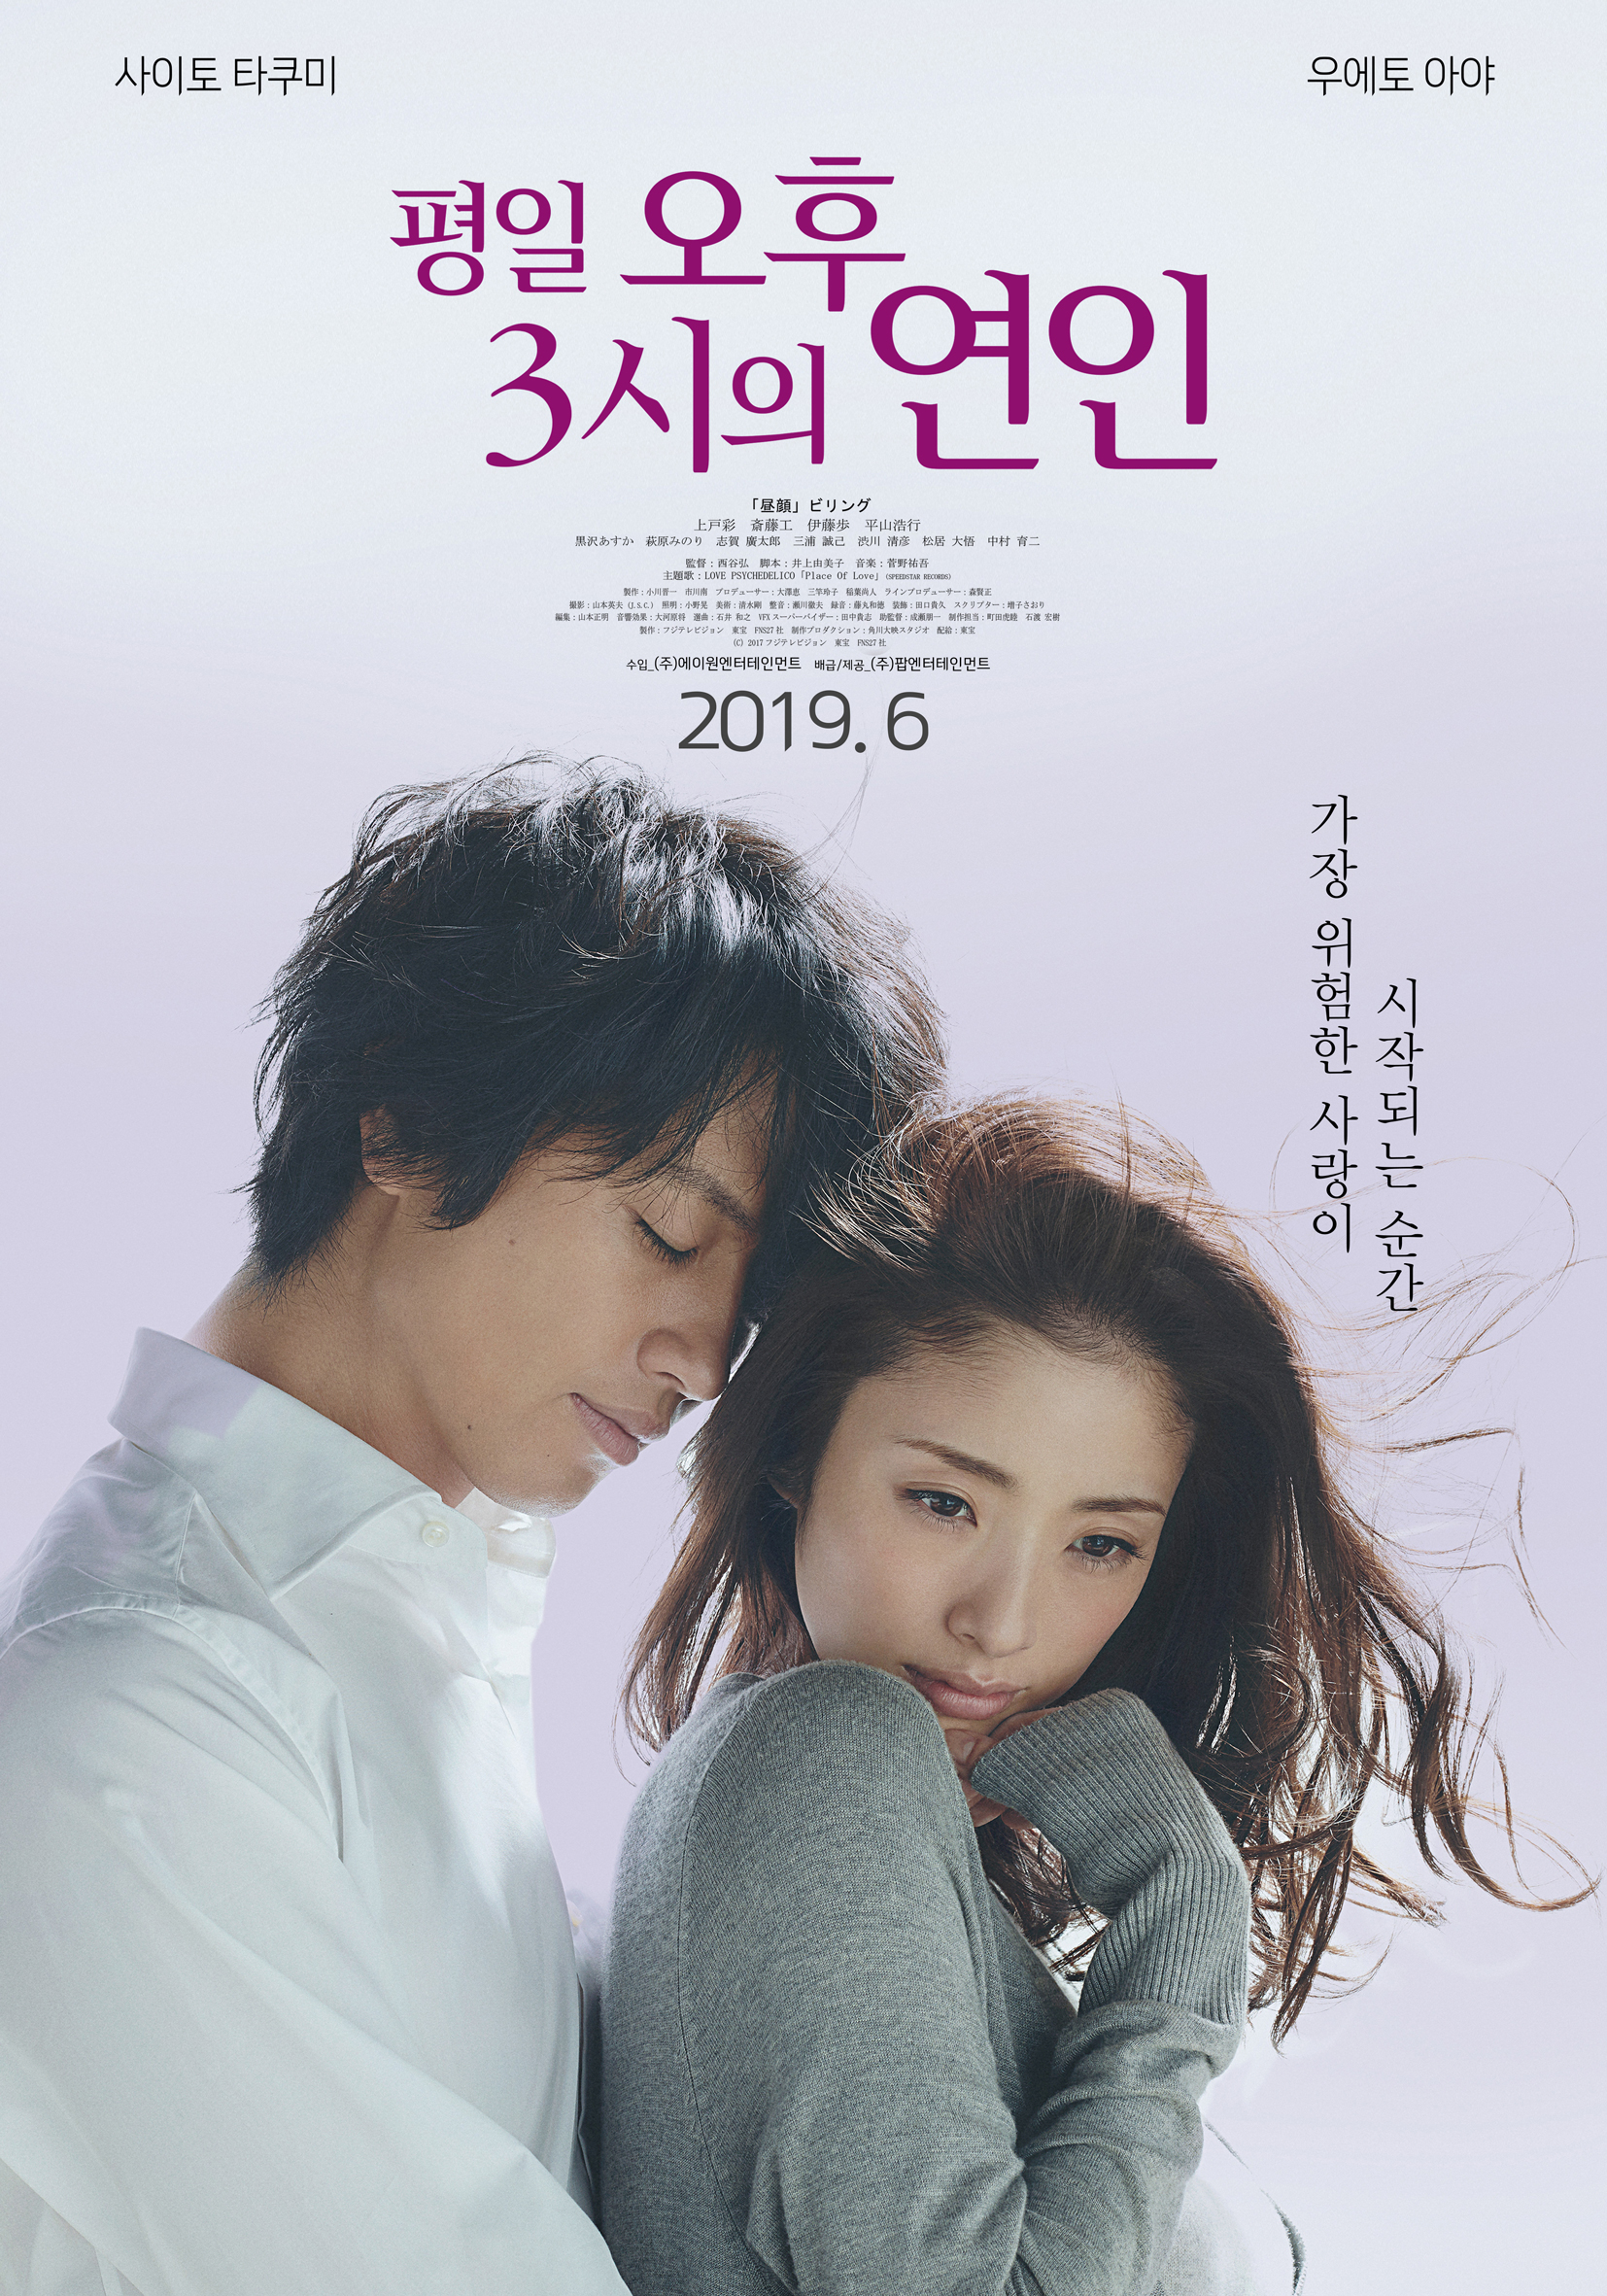 평일 오후 3시의 연인 (Hirugao : Love Affairs in the Afternoon, 2017)